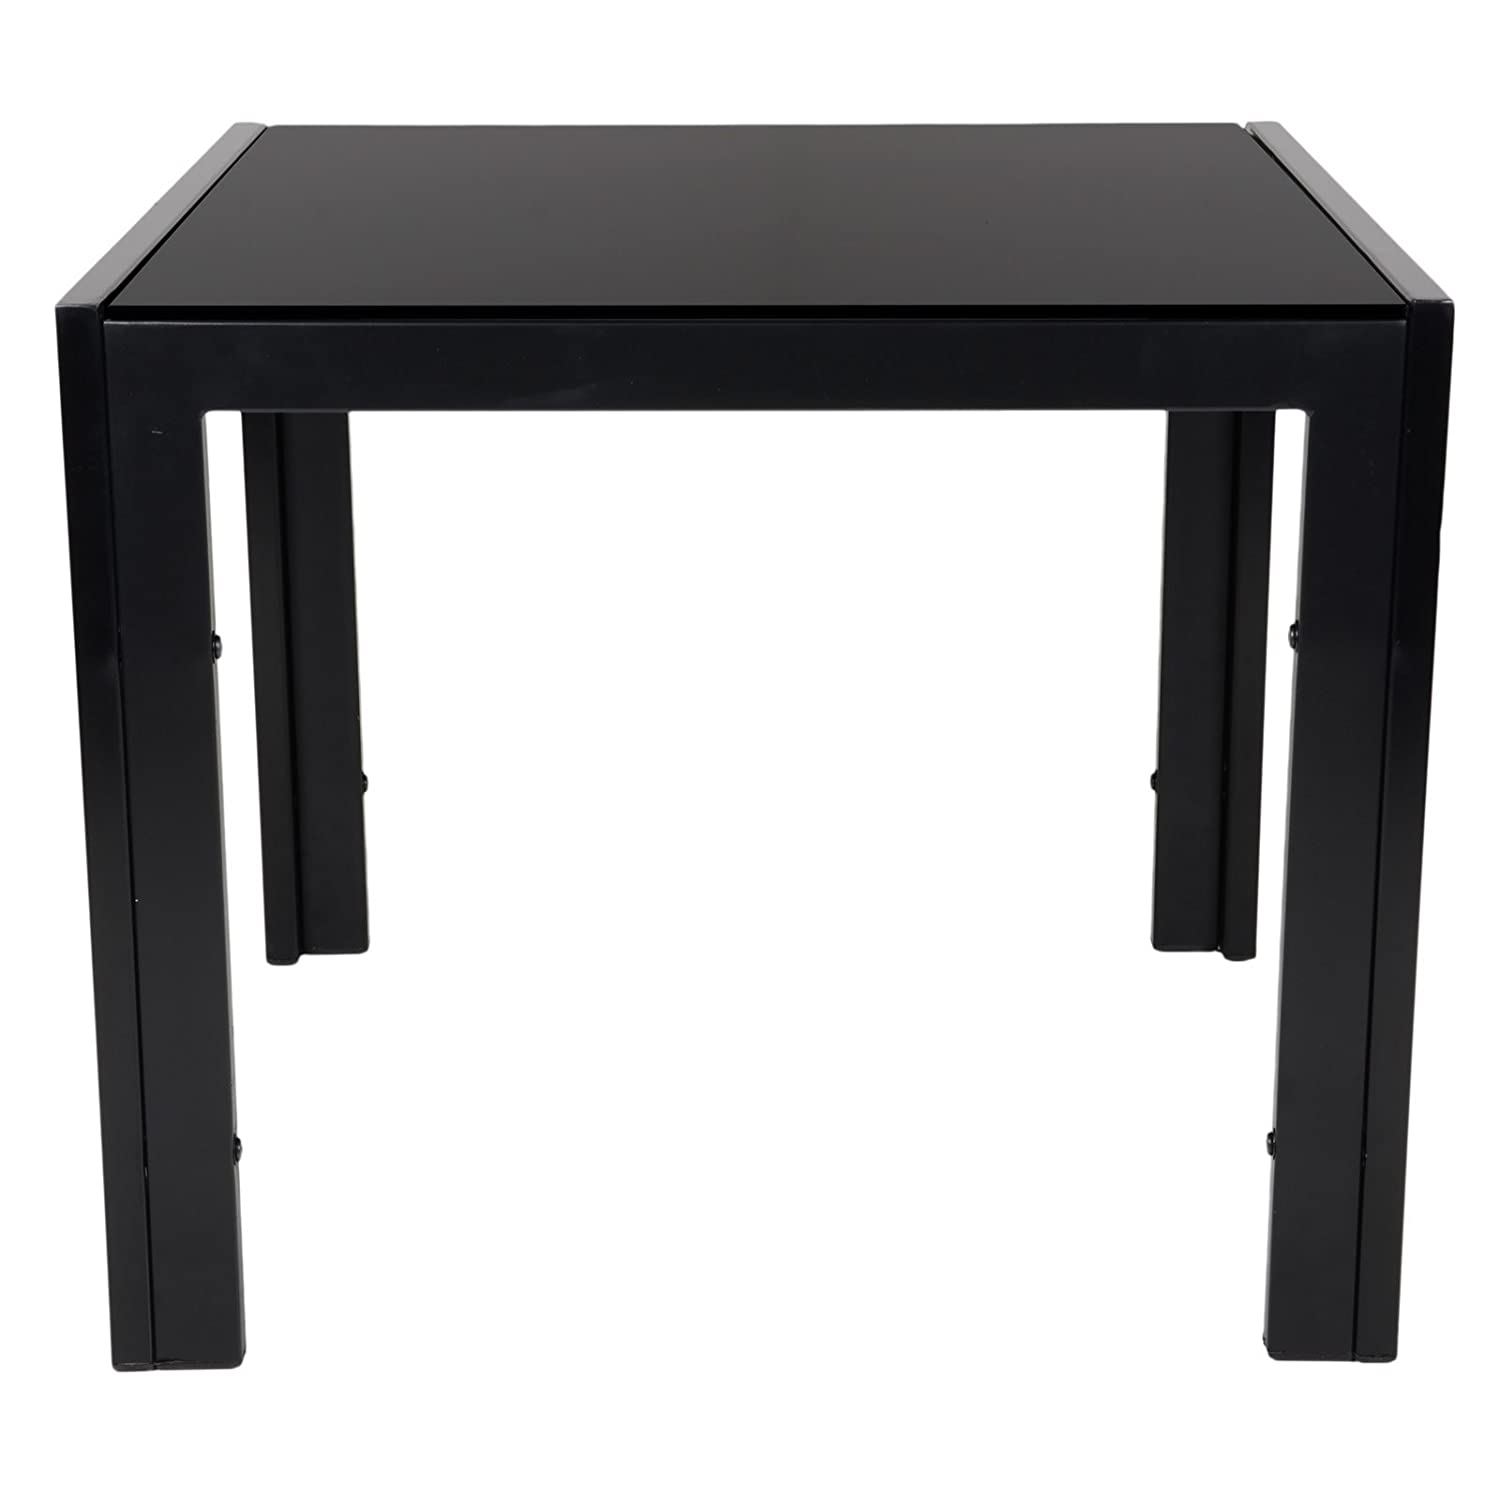 61od5 lj7KL. SL1500  Top Result 50 Luxury Black and White Coffee Table Image 2017 Shdy7